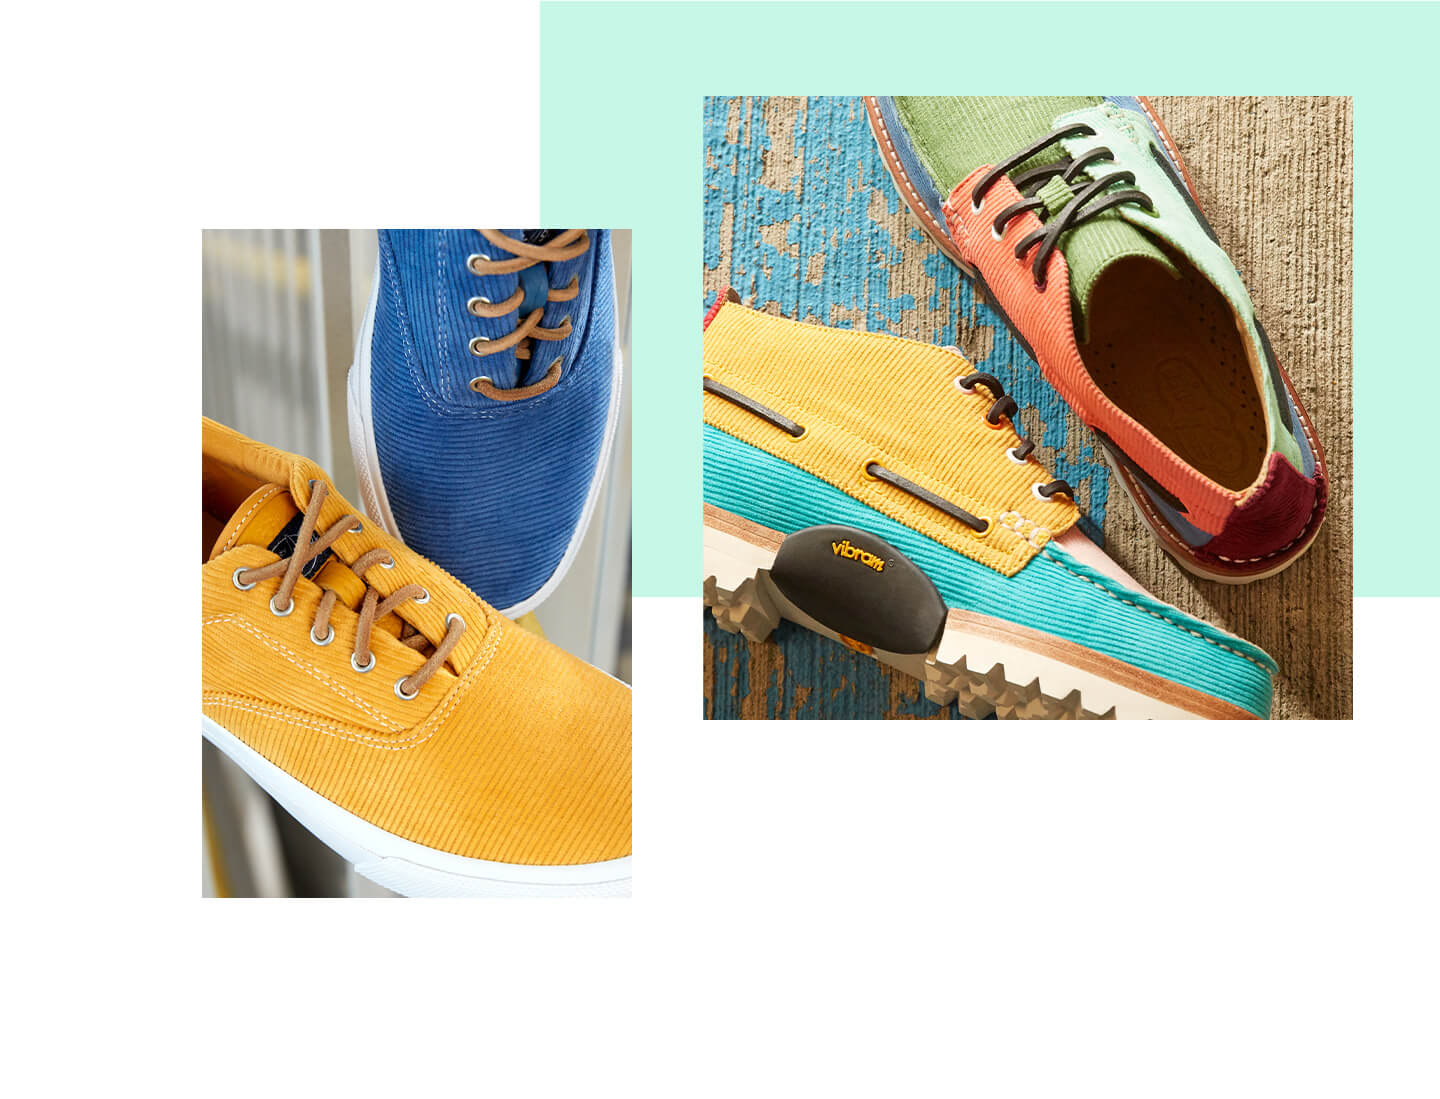 Collage of shoes from the Corduroy collection.